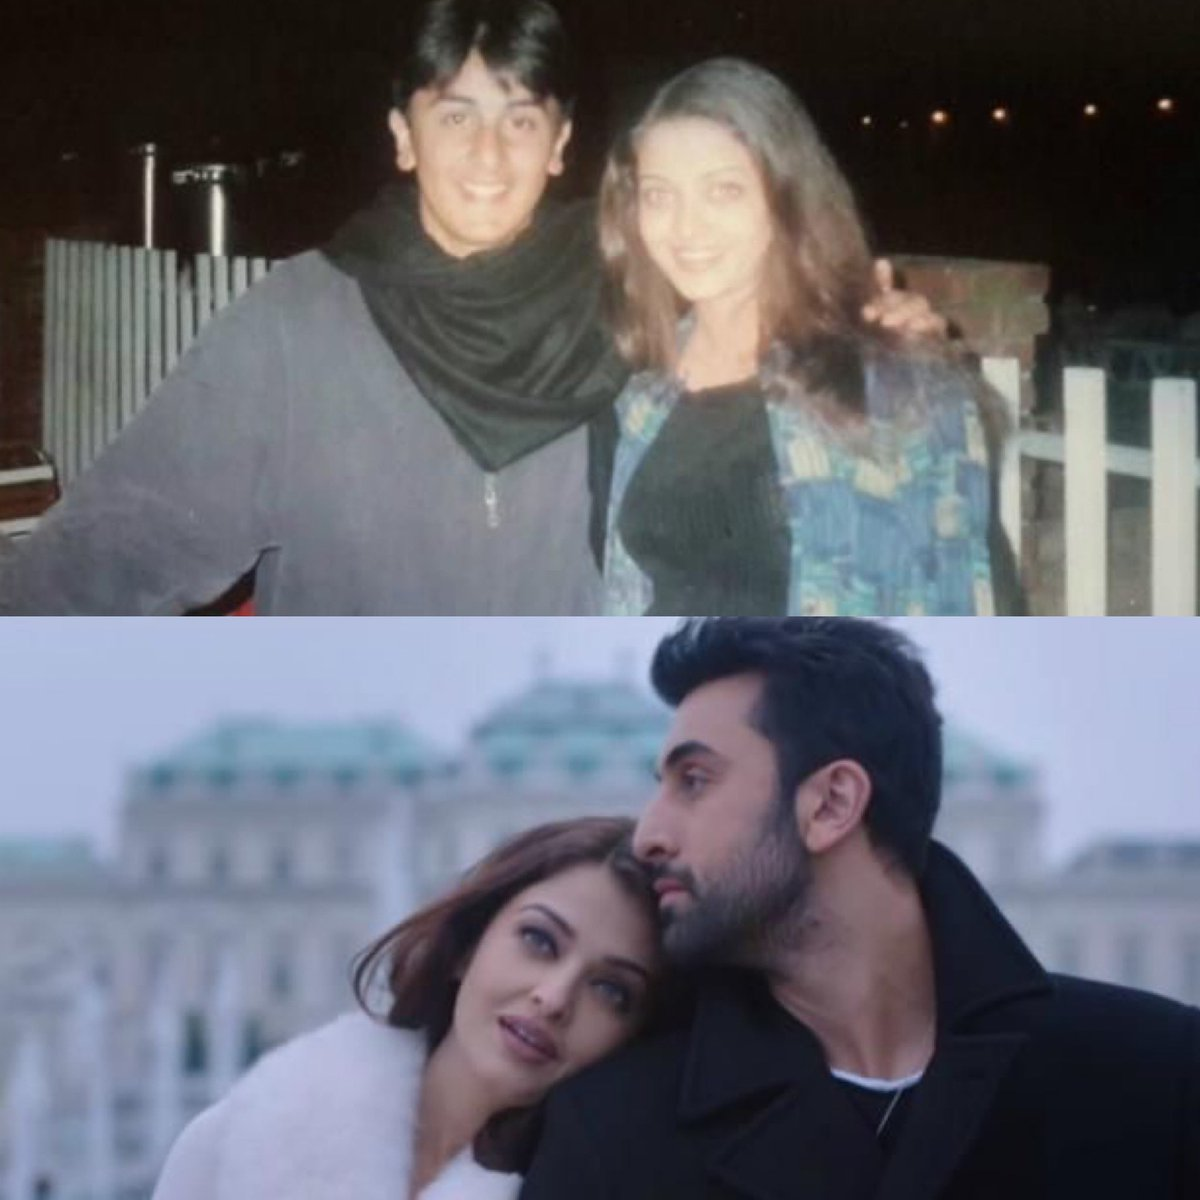 Before and after! Here's a lovely throwback picture of #AishwaryaRaiBachchan and #RanbirKapoor before they paired up in #ADHM. #4YearsOfADHM https://t.co/awZ96LS7c5